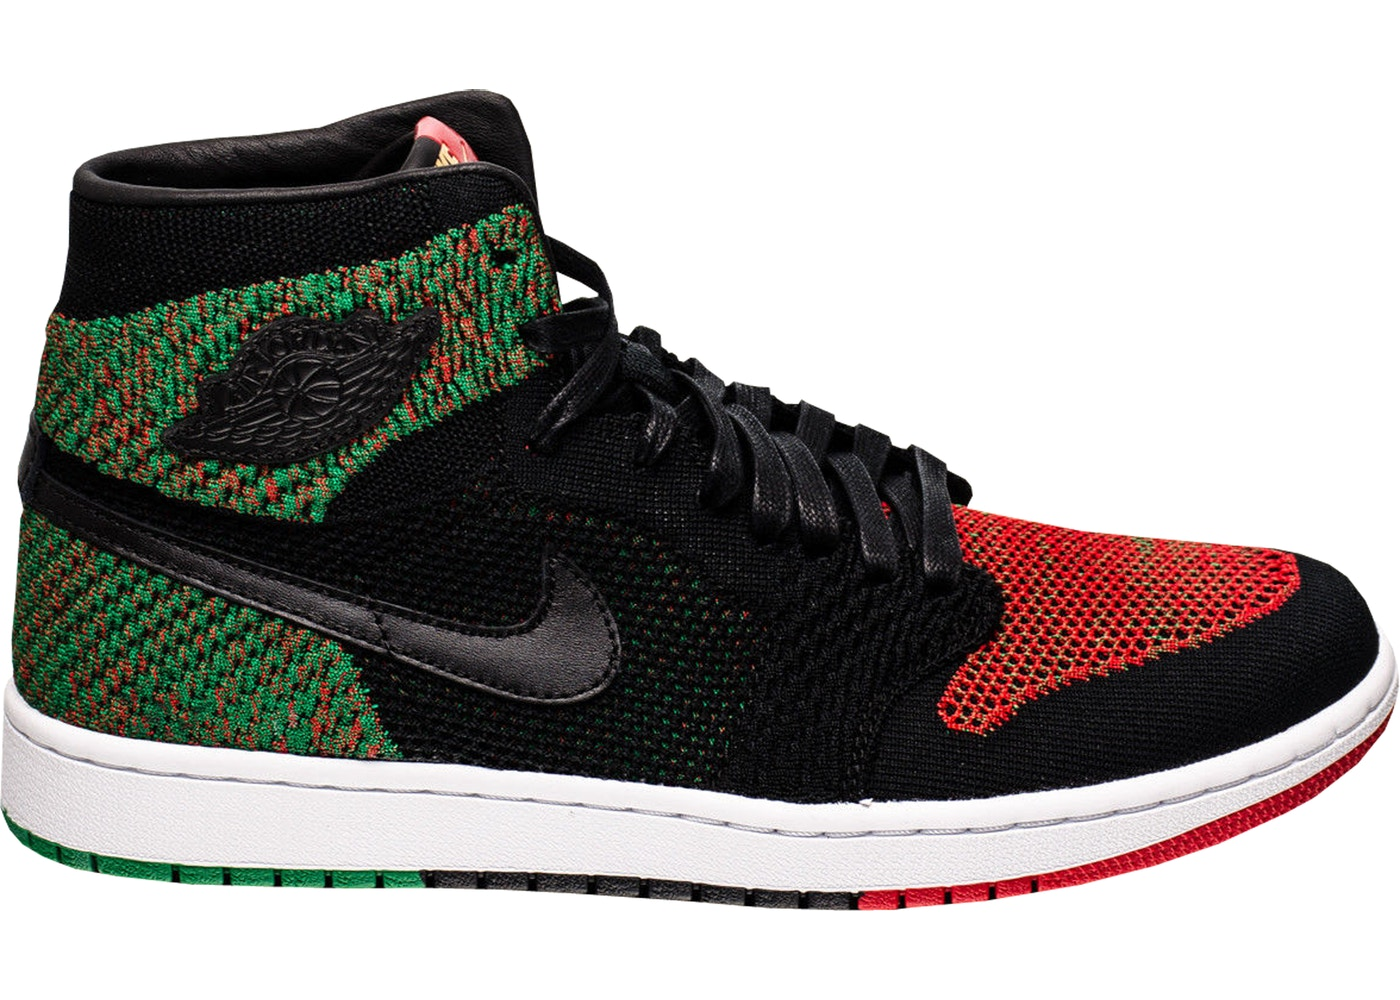 3c054d72e6d Jordan 1 Retro High Flyknit Black History Month (2018) - AA2426-026